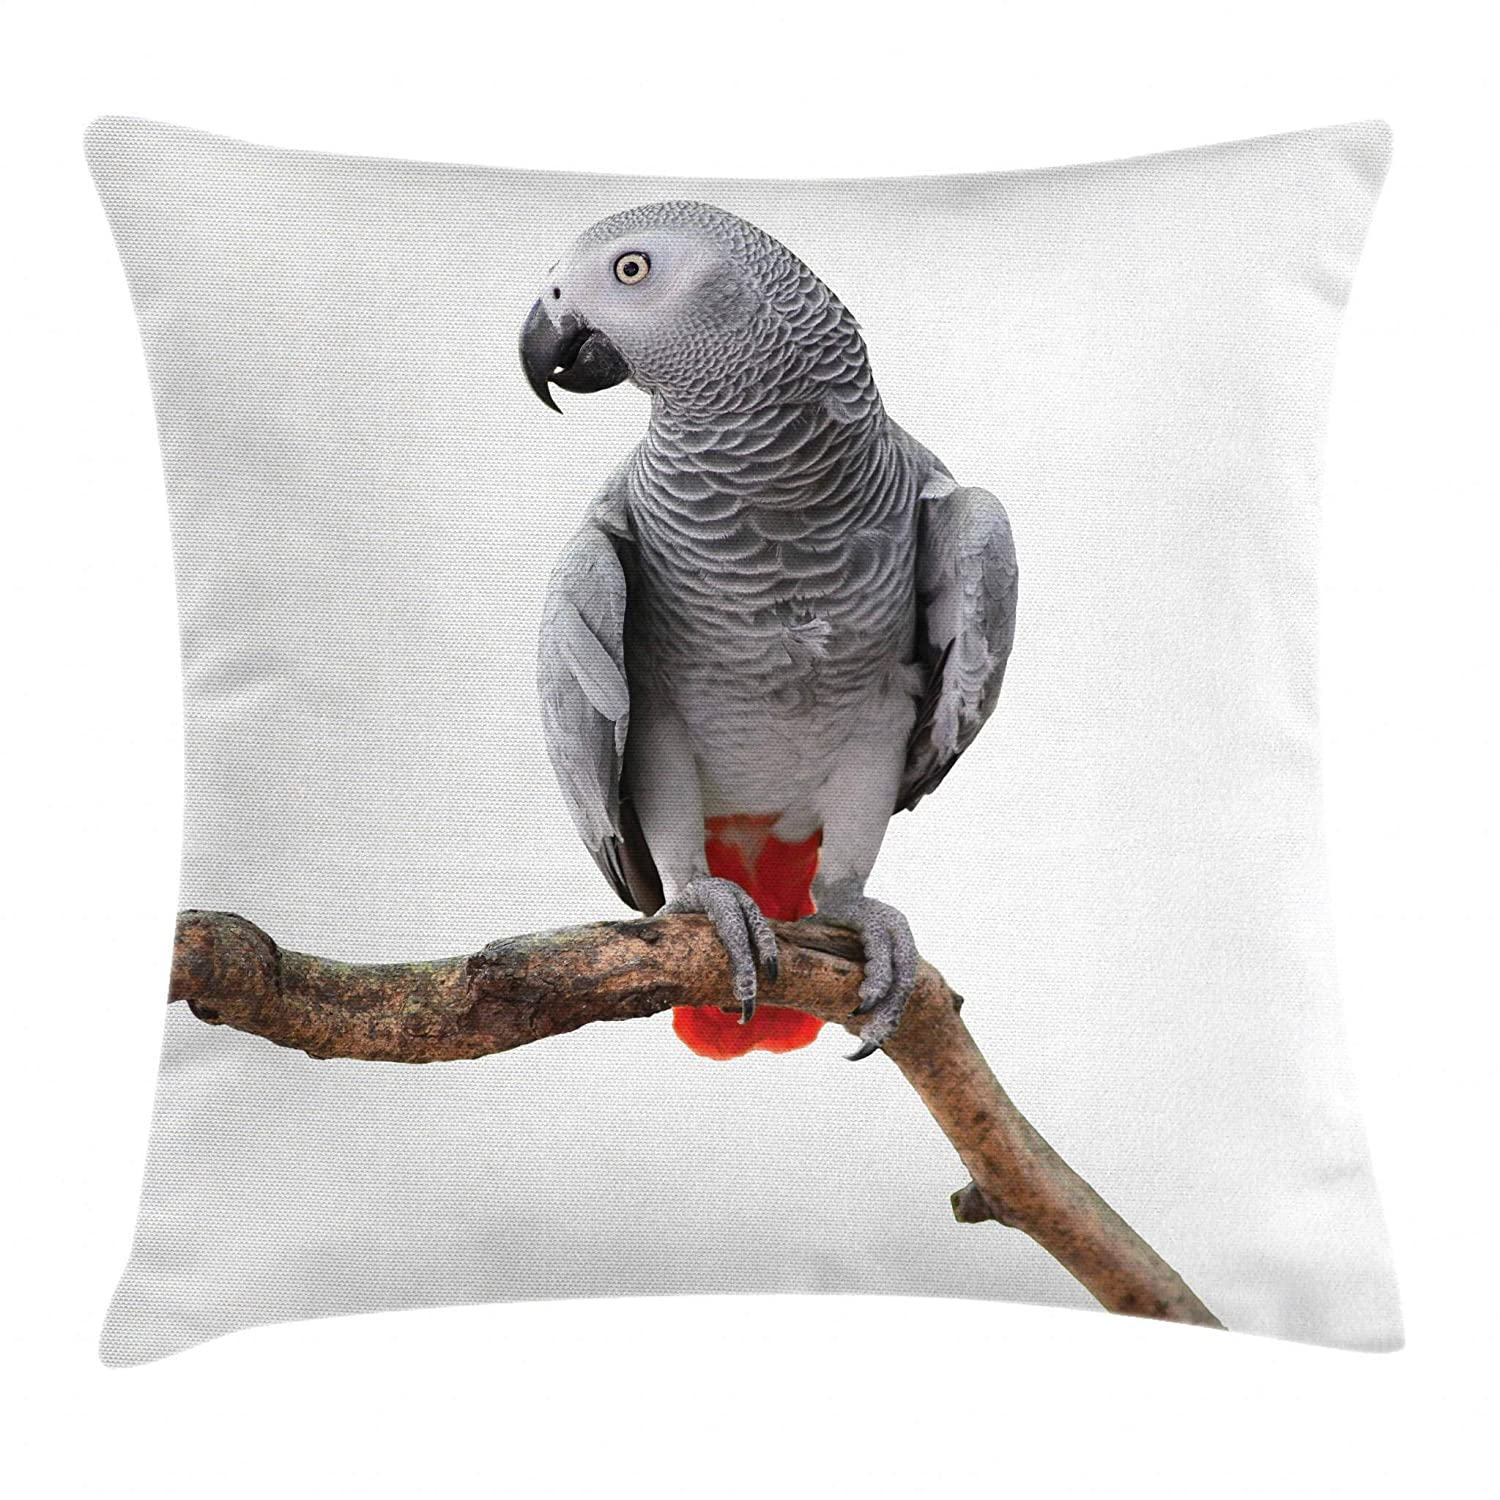 "Ambesonne Grey Throw Pillow Cushion Cover, Parrot Bird Psittacus Erithacus Standing on a Branch Tropical Nature Wildlife, Decorative Square Accent Pillow Case, 16"" X 16"", White Grey"